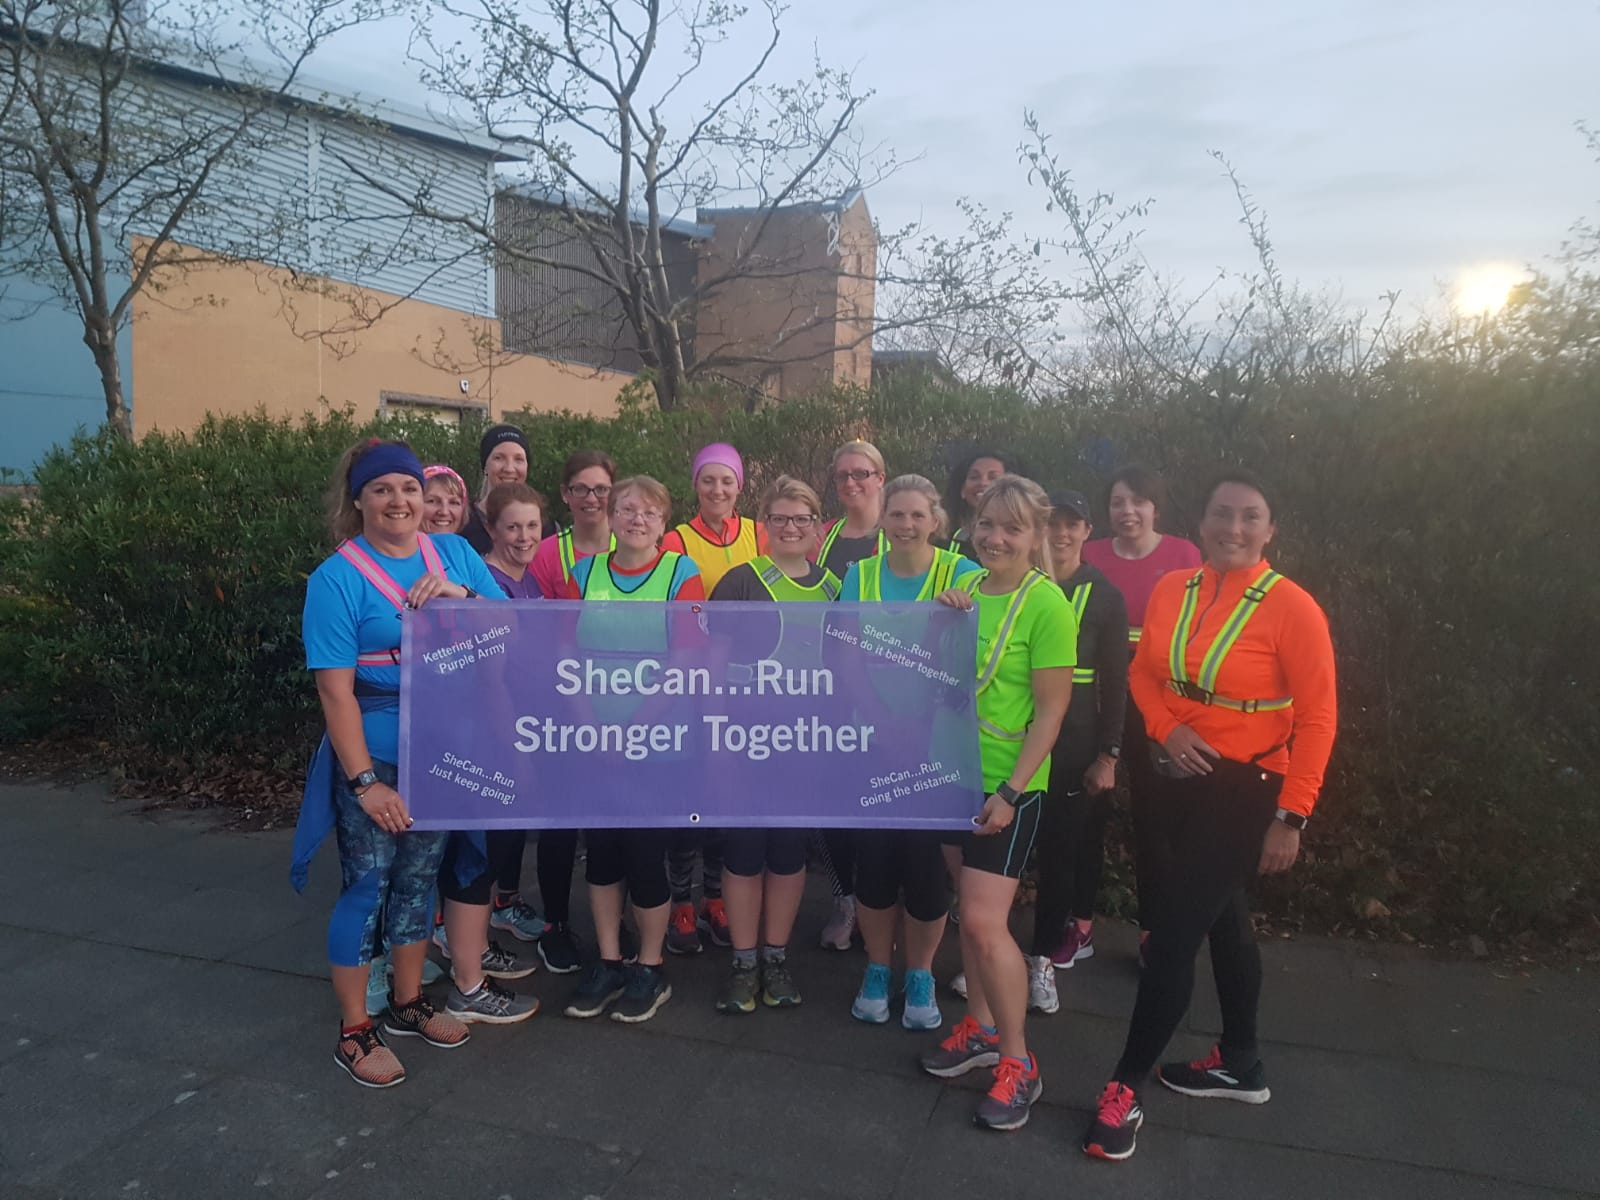 She Can...Run - Stronger Together